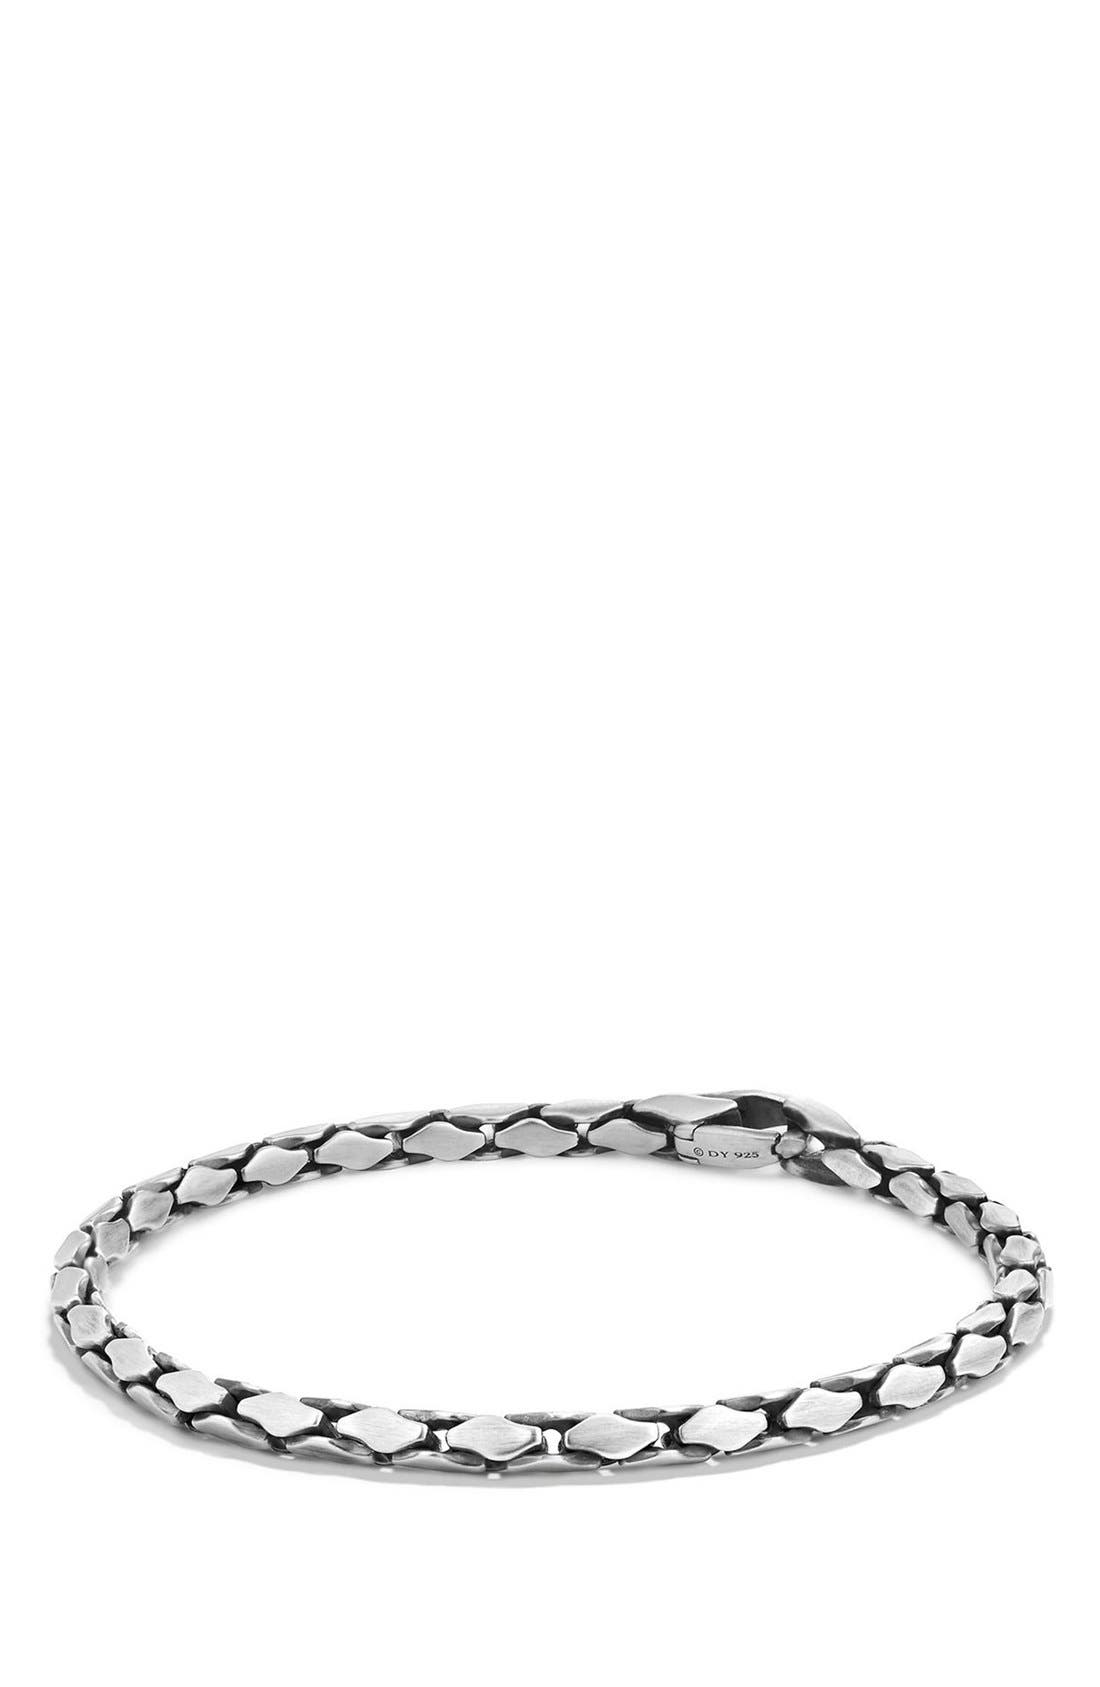 DAVID YURMAN Chain Small Fluted Chain Bracelet